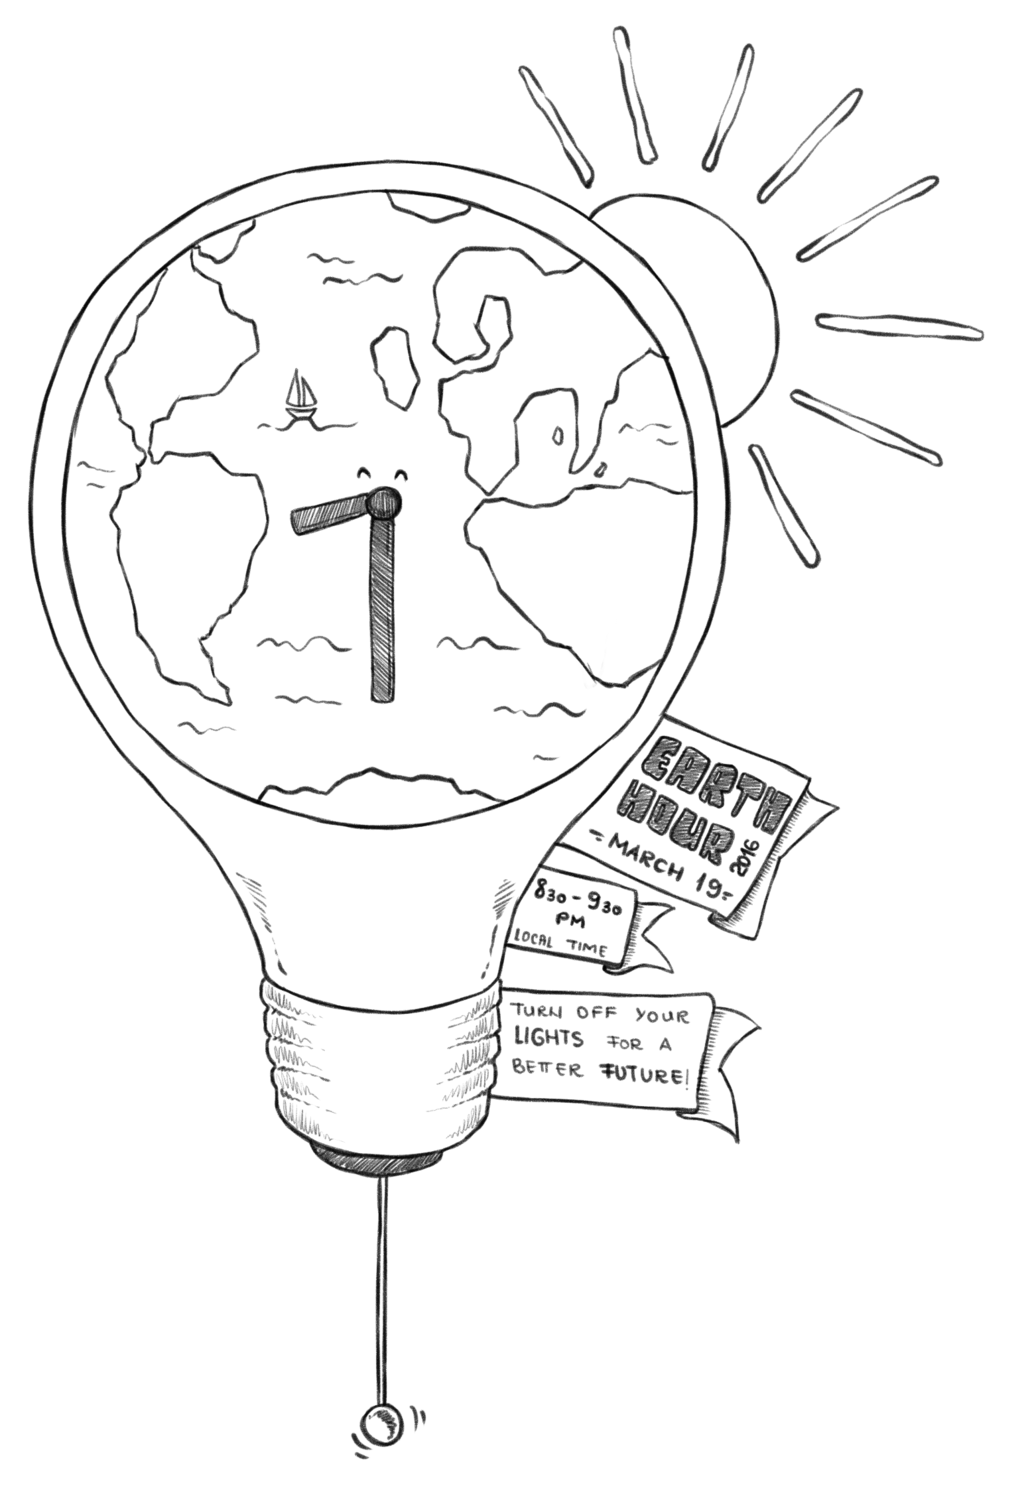 Drawing 2016. Earth hour energy conservation